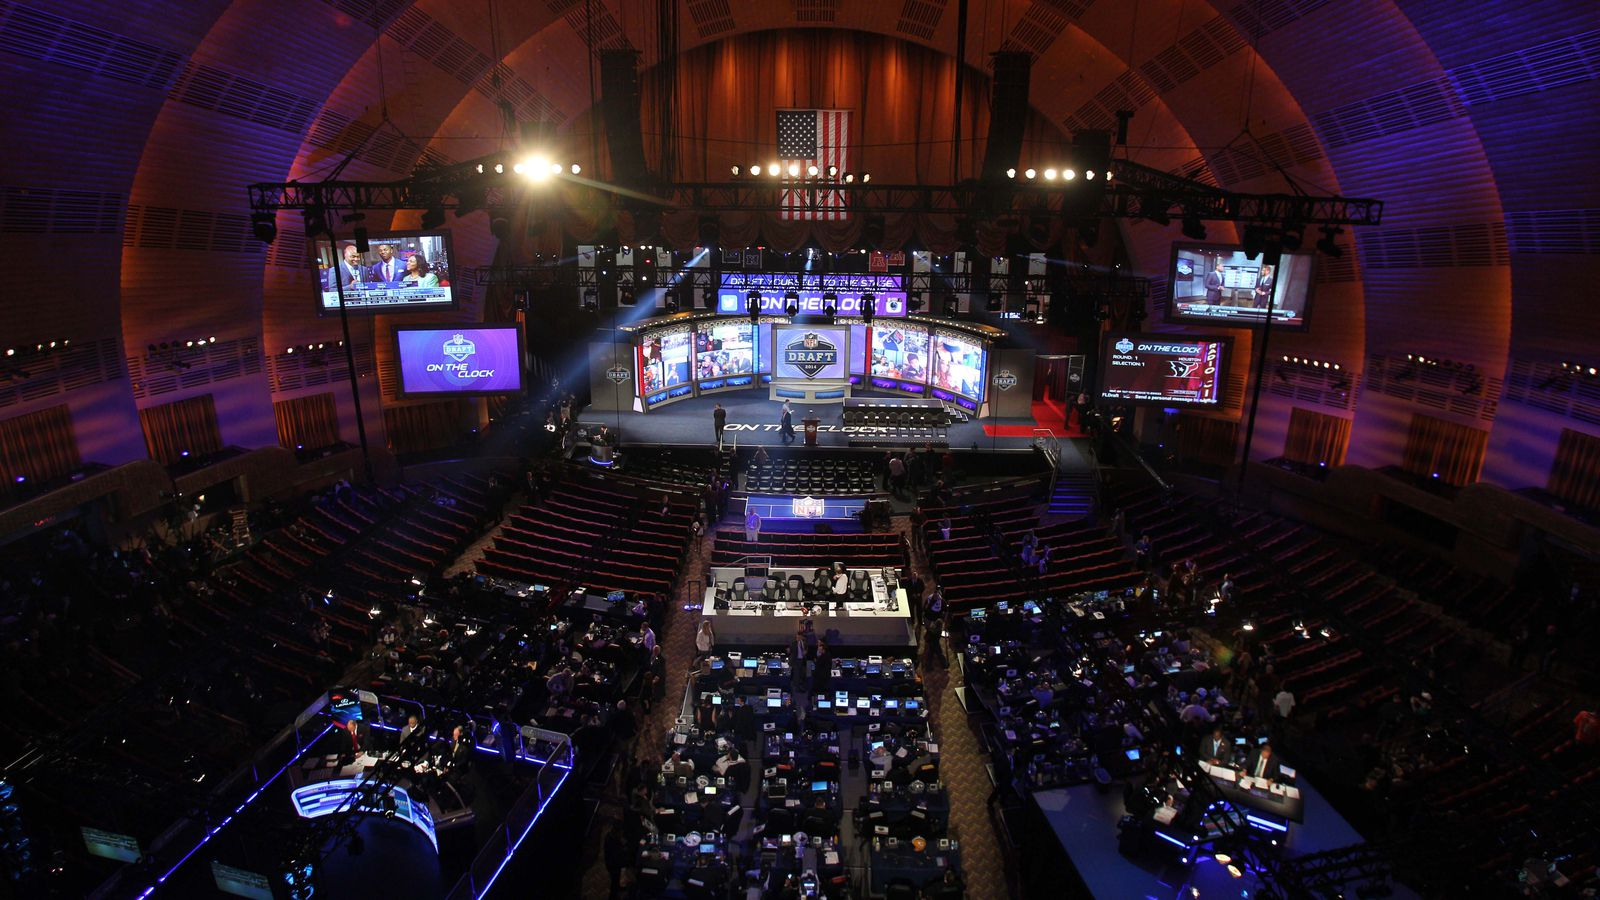 Chicago to Host 2015 NFL Draft: Draft Dates, Venue, Reaction and More ...